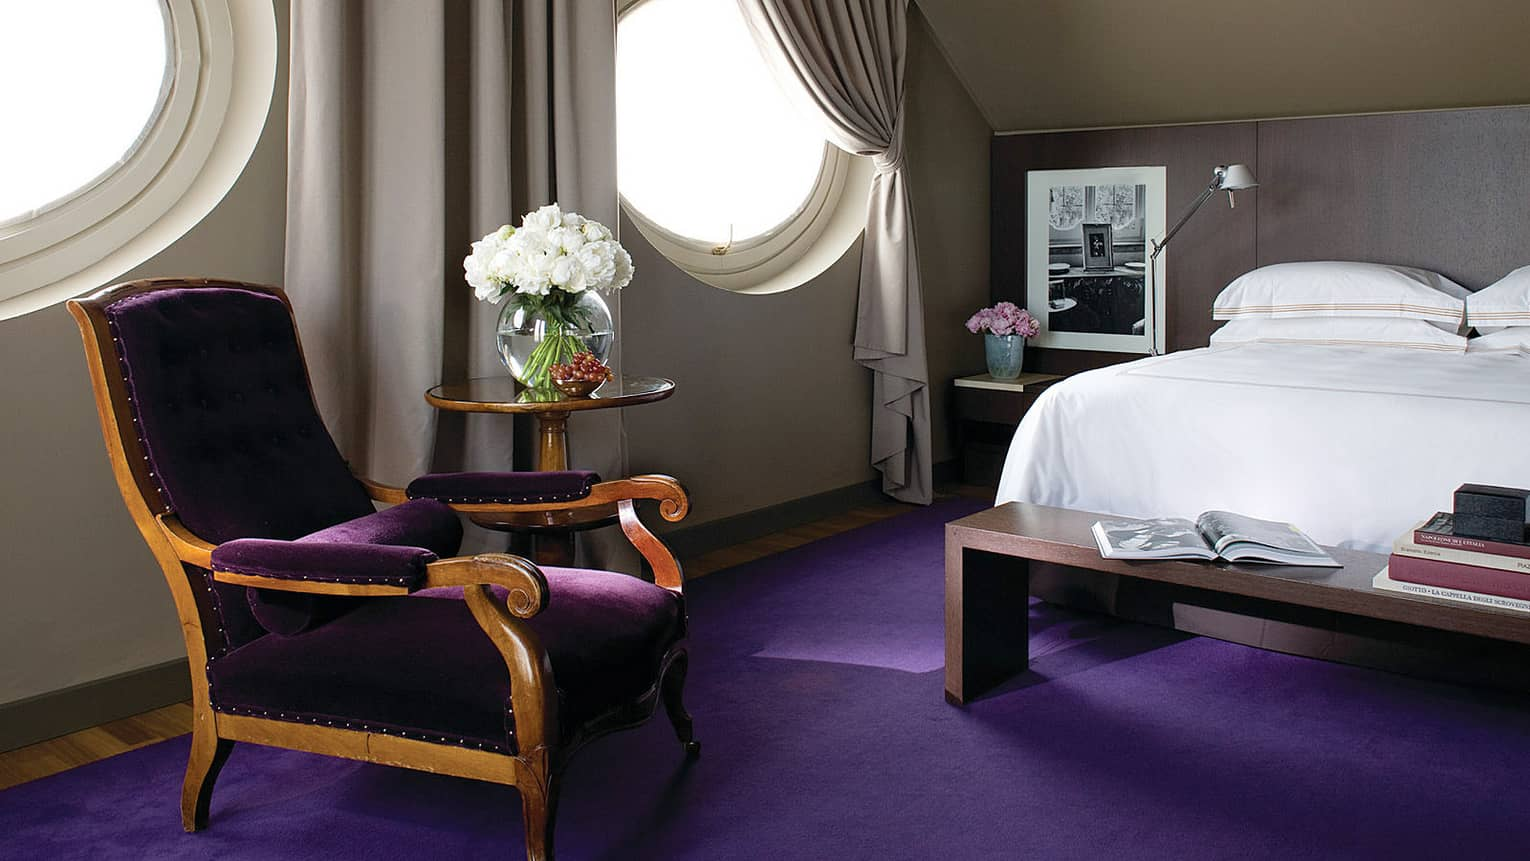 Designer Suite circular windows over purple velvet chair, carpet, bed with wood bench, books